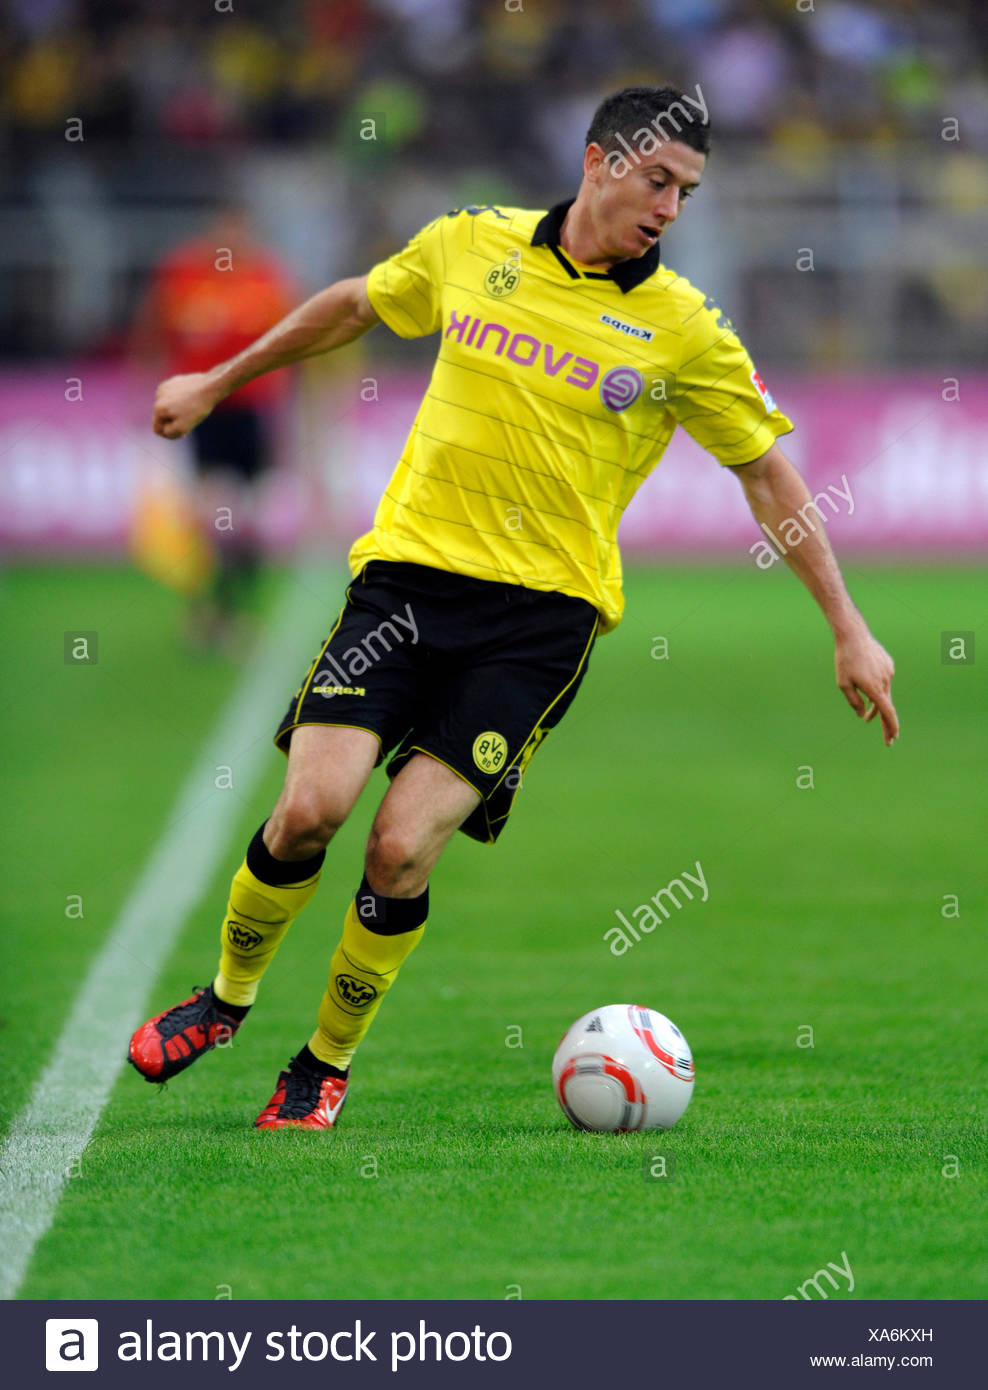 Fussball-Bundesliga, professional association football league in Germany, Season 2010-2011, 1st match of the round, Borussia - Stock Image